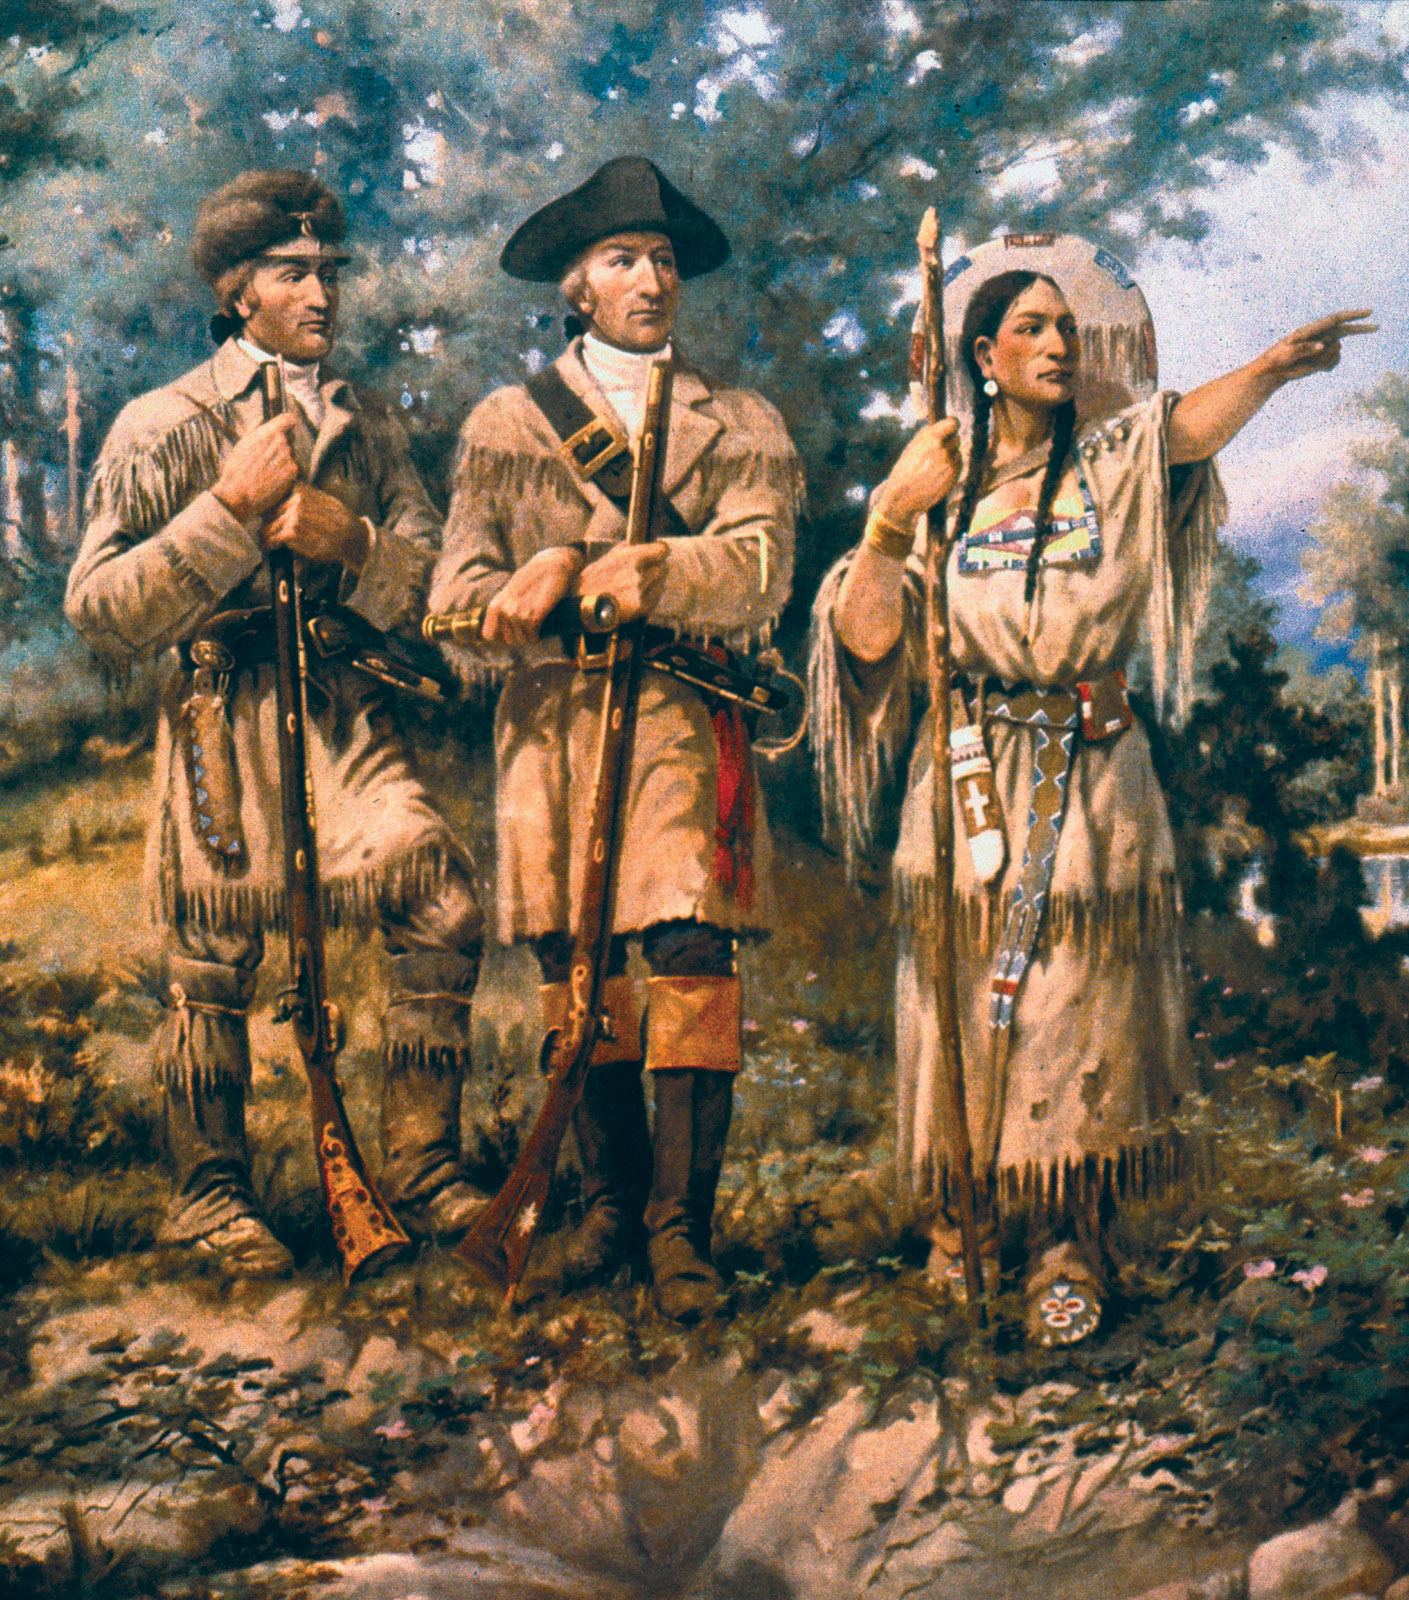 the many accomplishments of sacajawea Sacagawea was born sometime around 1790 she is best known for her role in assisting the lewis and clark expedition she and her husband were guides from the great plains to the pacific ocean and back sacagawea was kidnapped from her shoshone village by hidatsa indians when she was twelve years old.